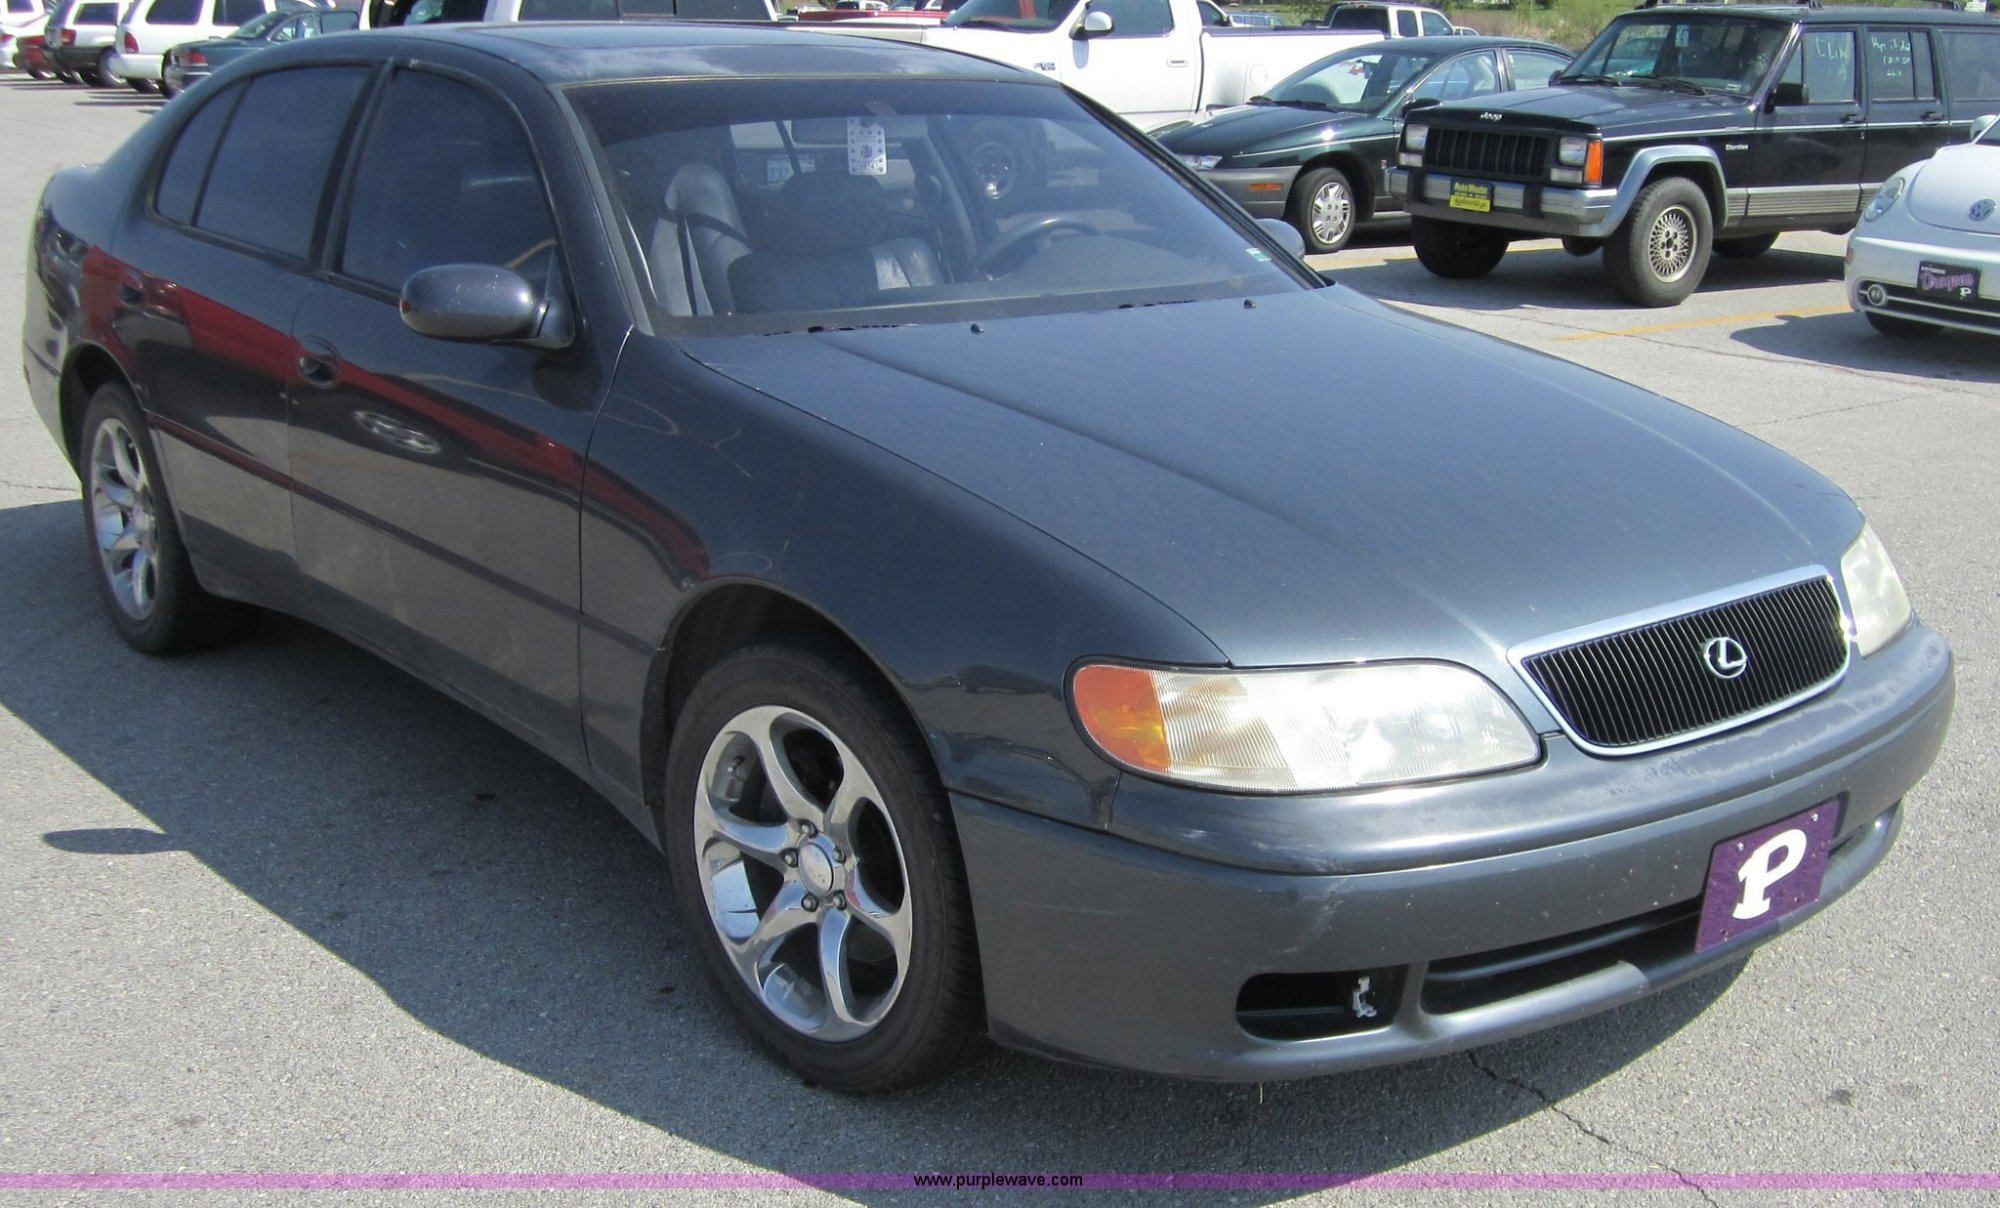 hight resolution of  1993 lexus gs300 full size in new window